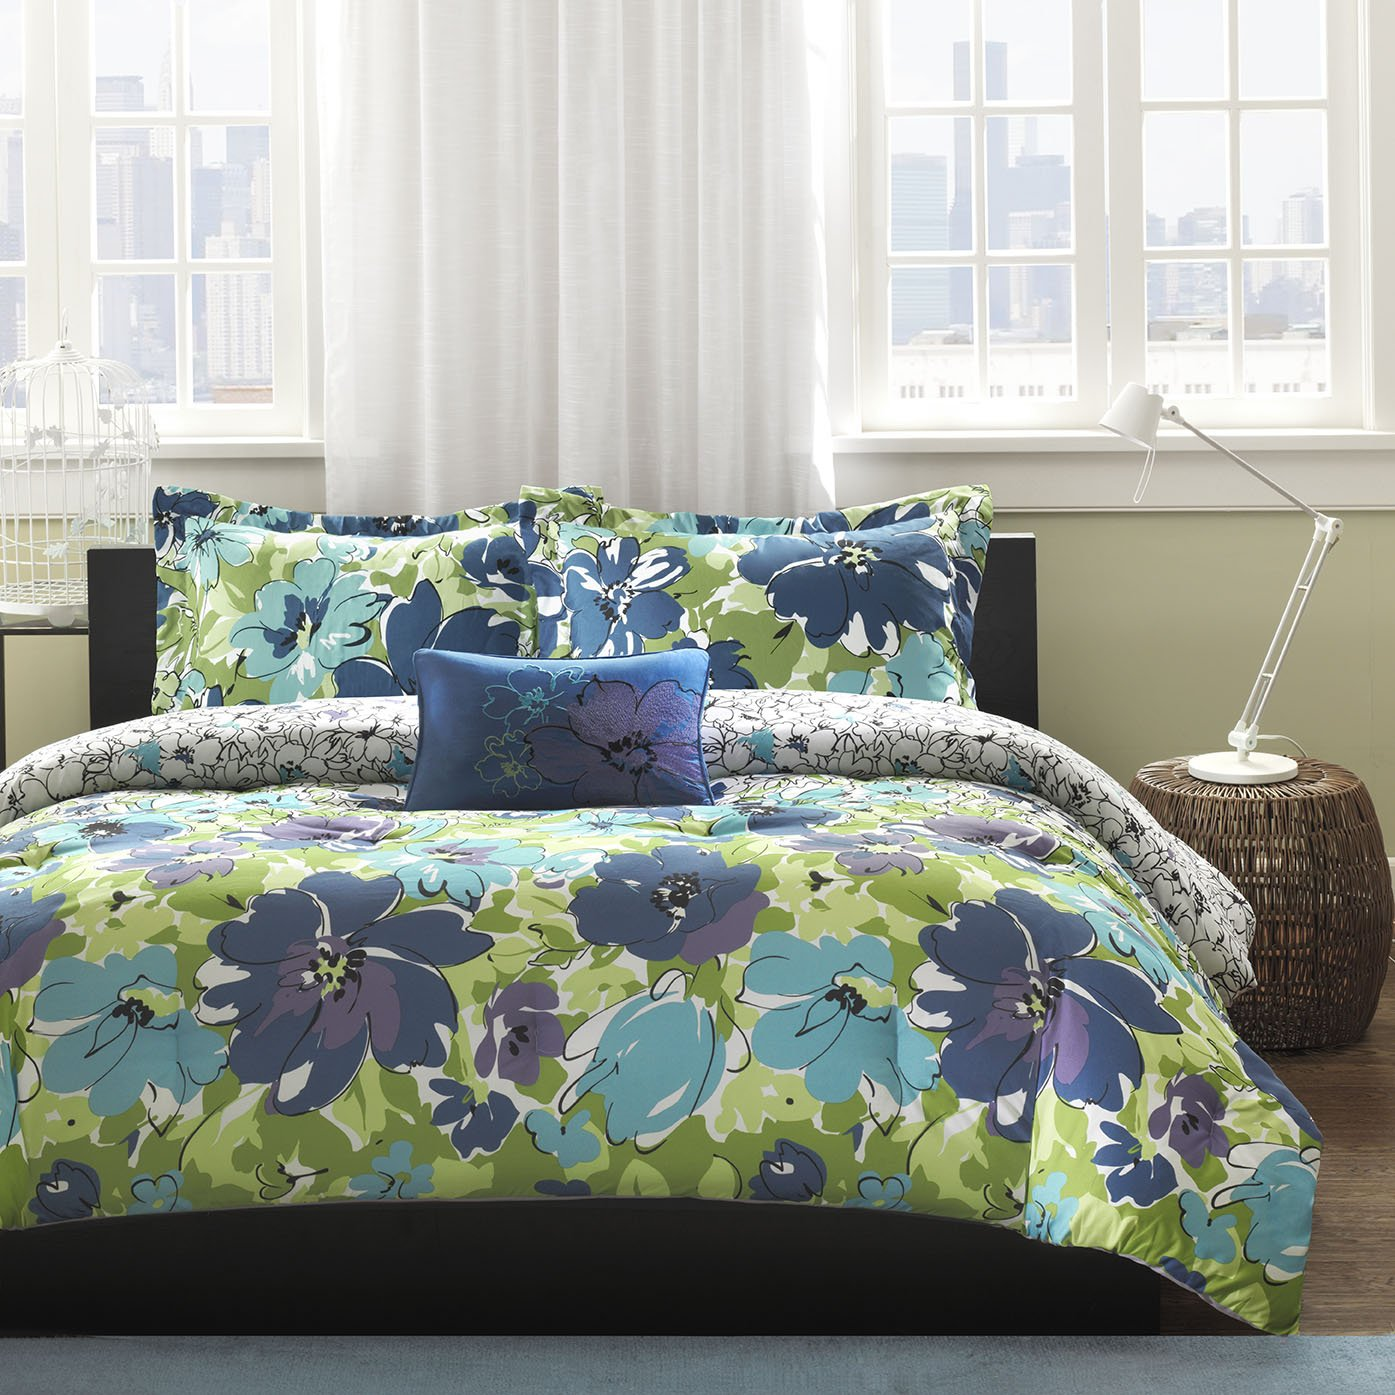 Mizone Jayna 4 Piece Comforter Set, Full/Queen, Blue